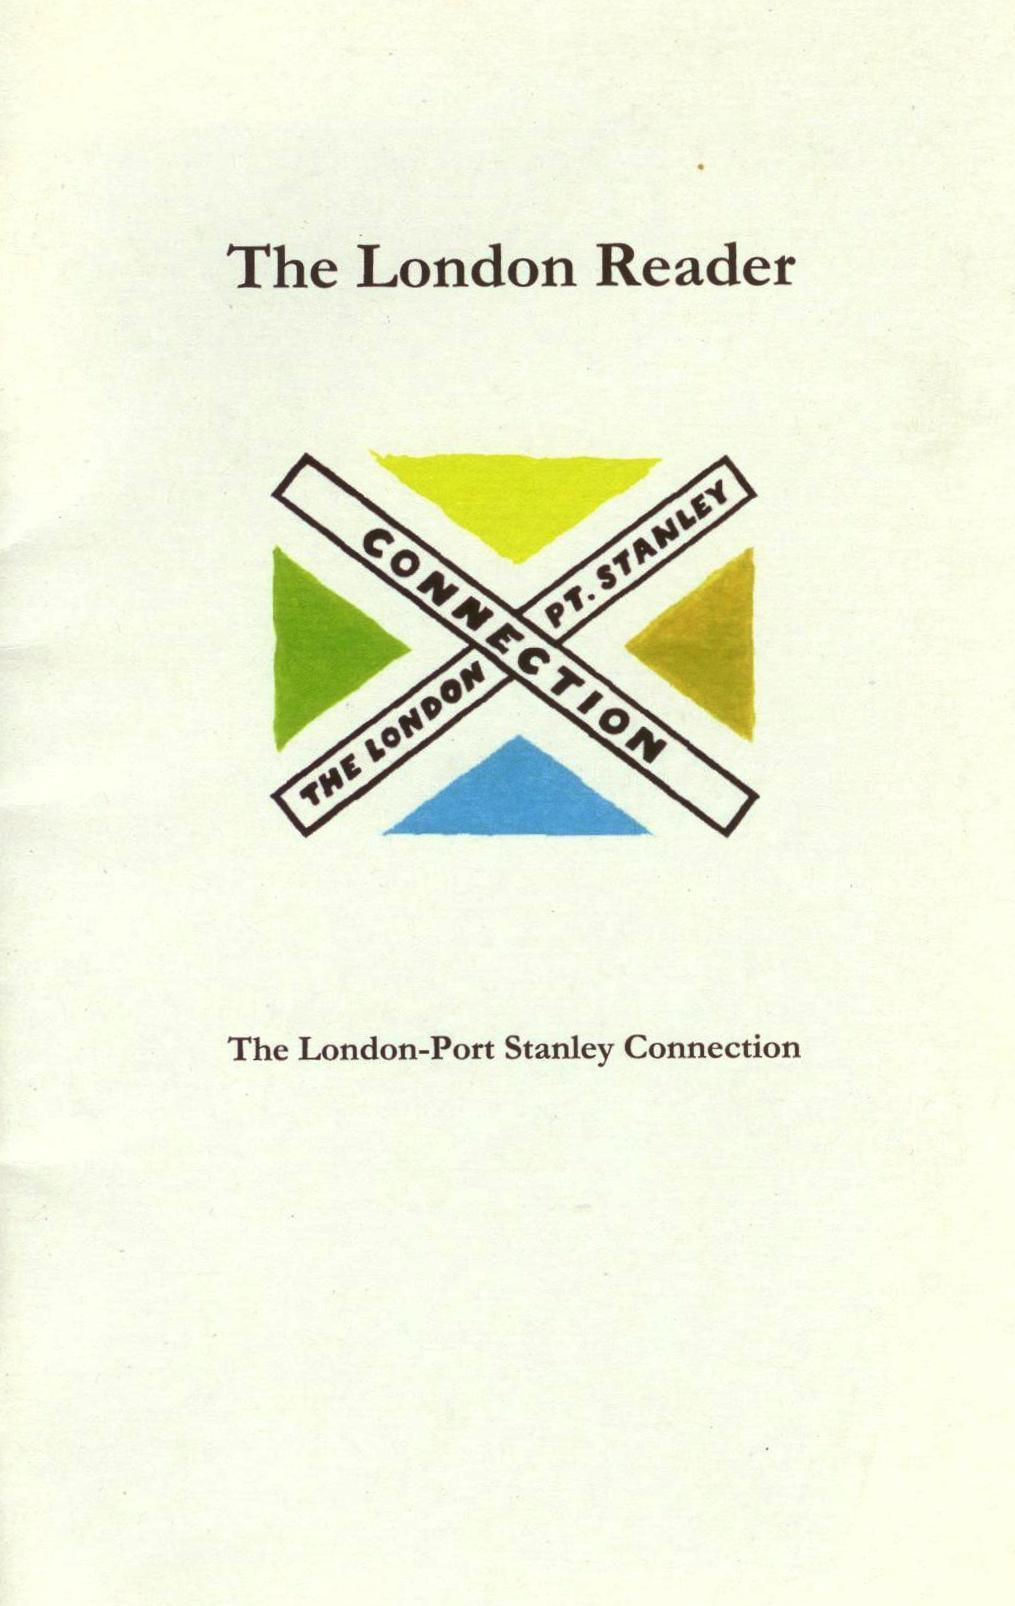 The London-Port Stanley Connection